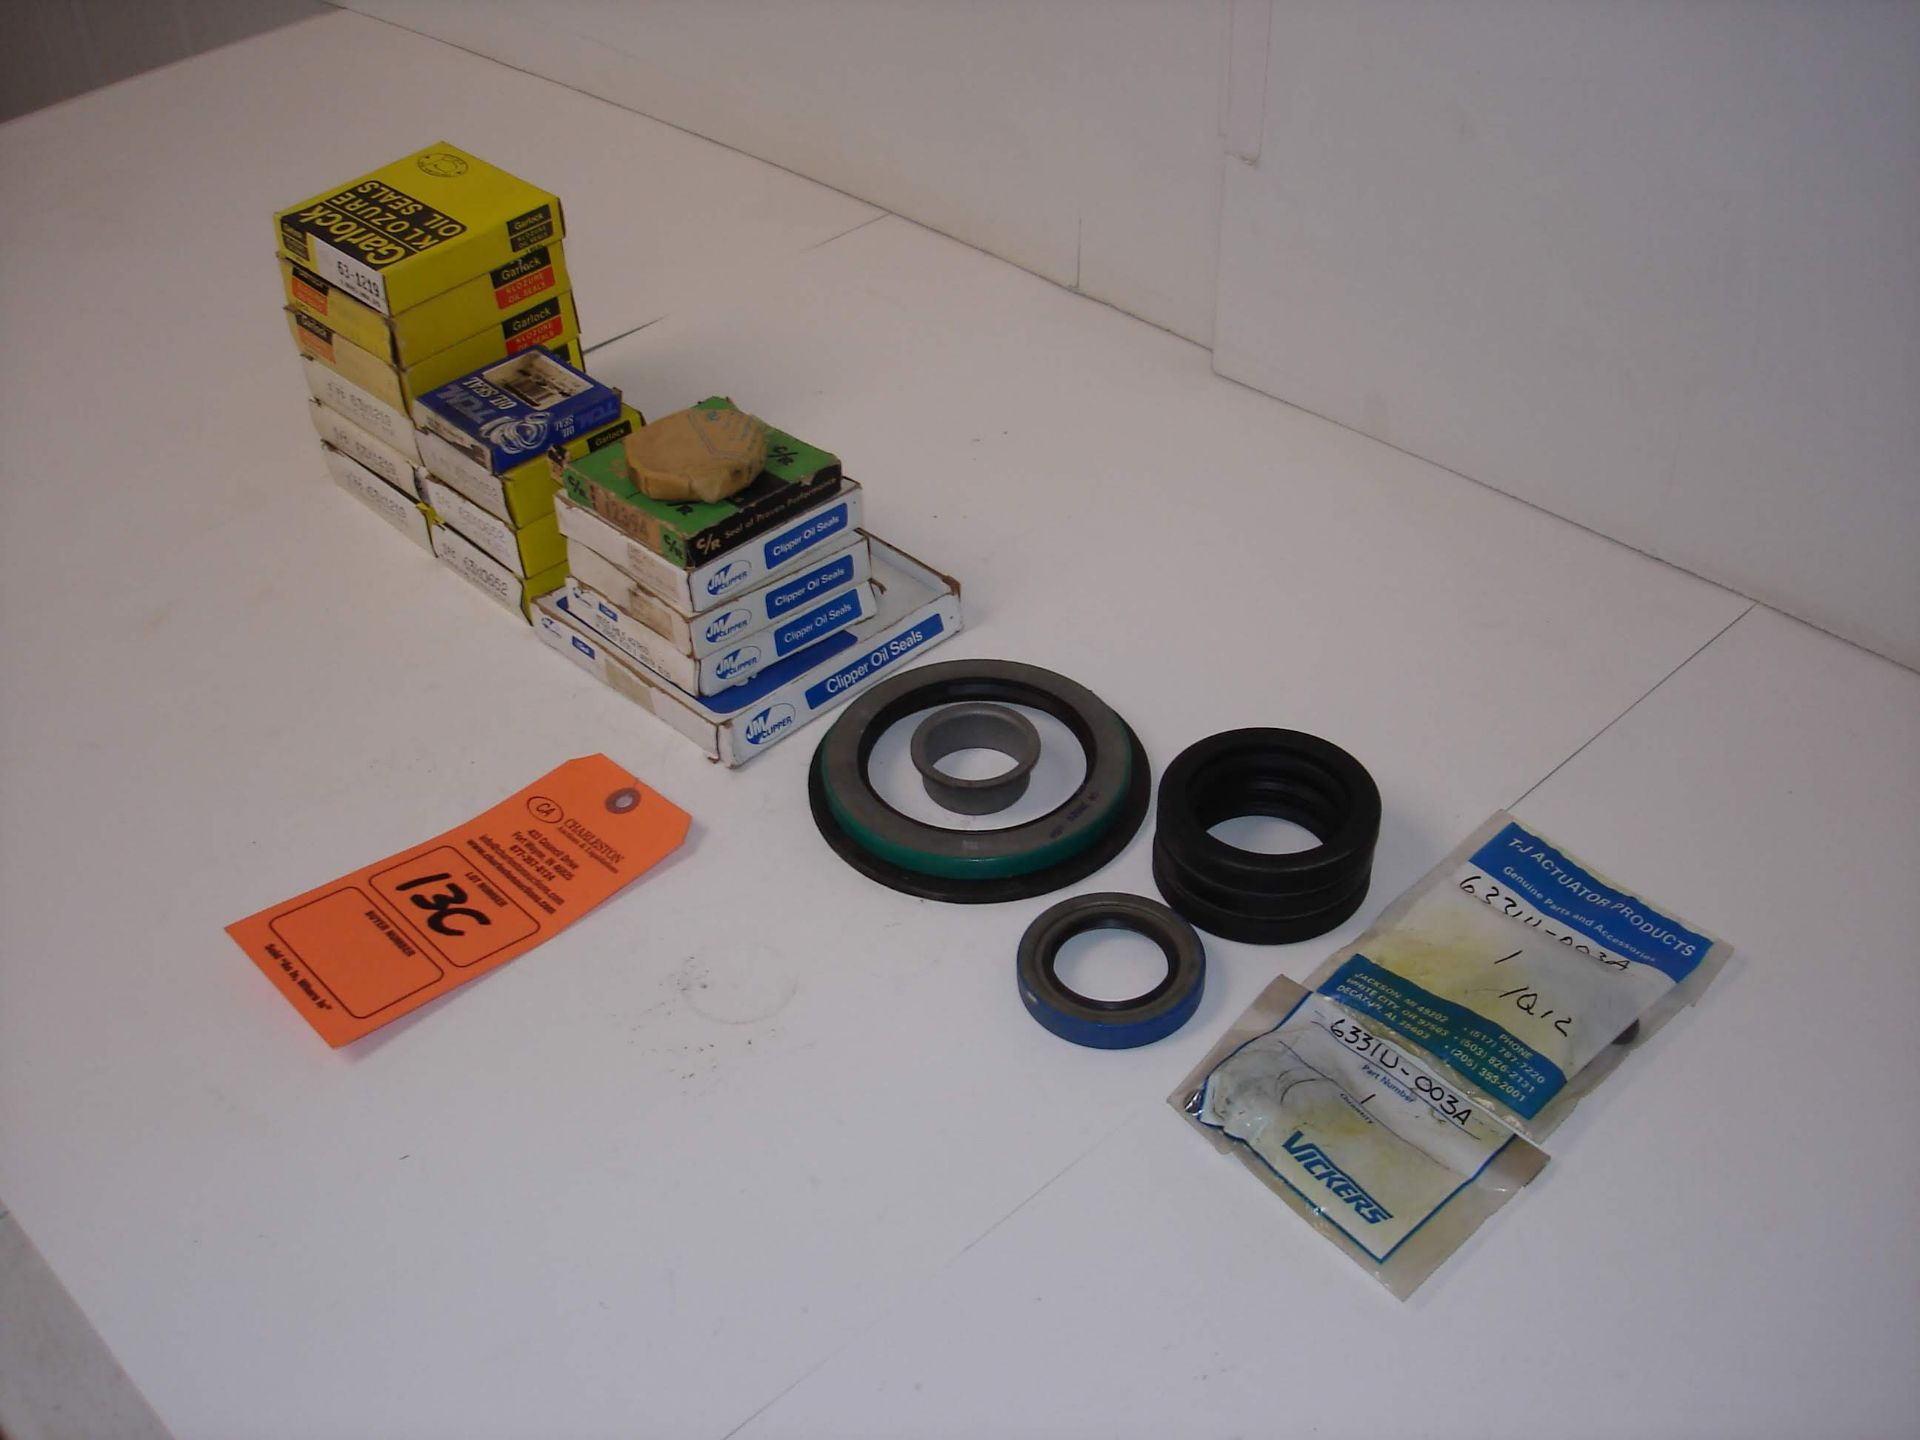 Lot 13C - (20+) MISC BRANDED OIL SEALS AND PARTS: NEW IN BOX GARLOCK KLOZURE OIL SEALS AND ALL OTHER ITEMS